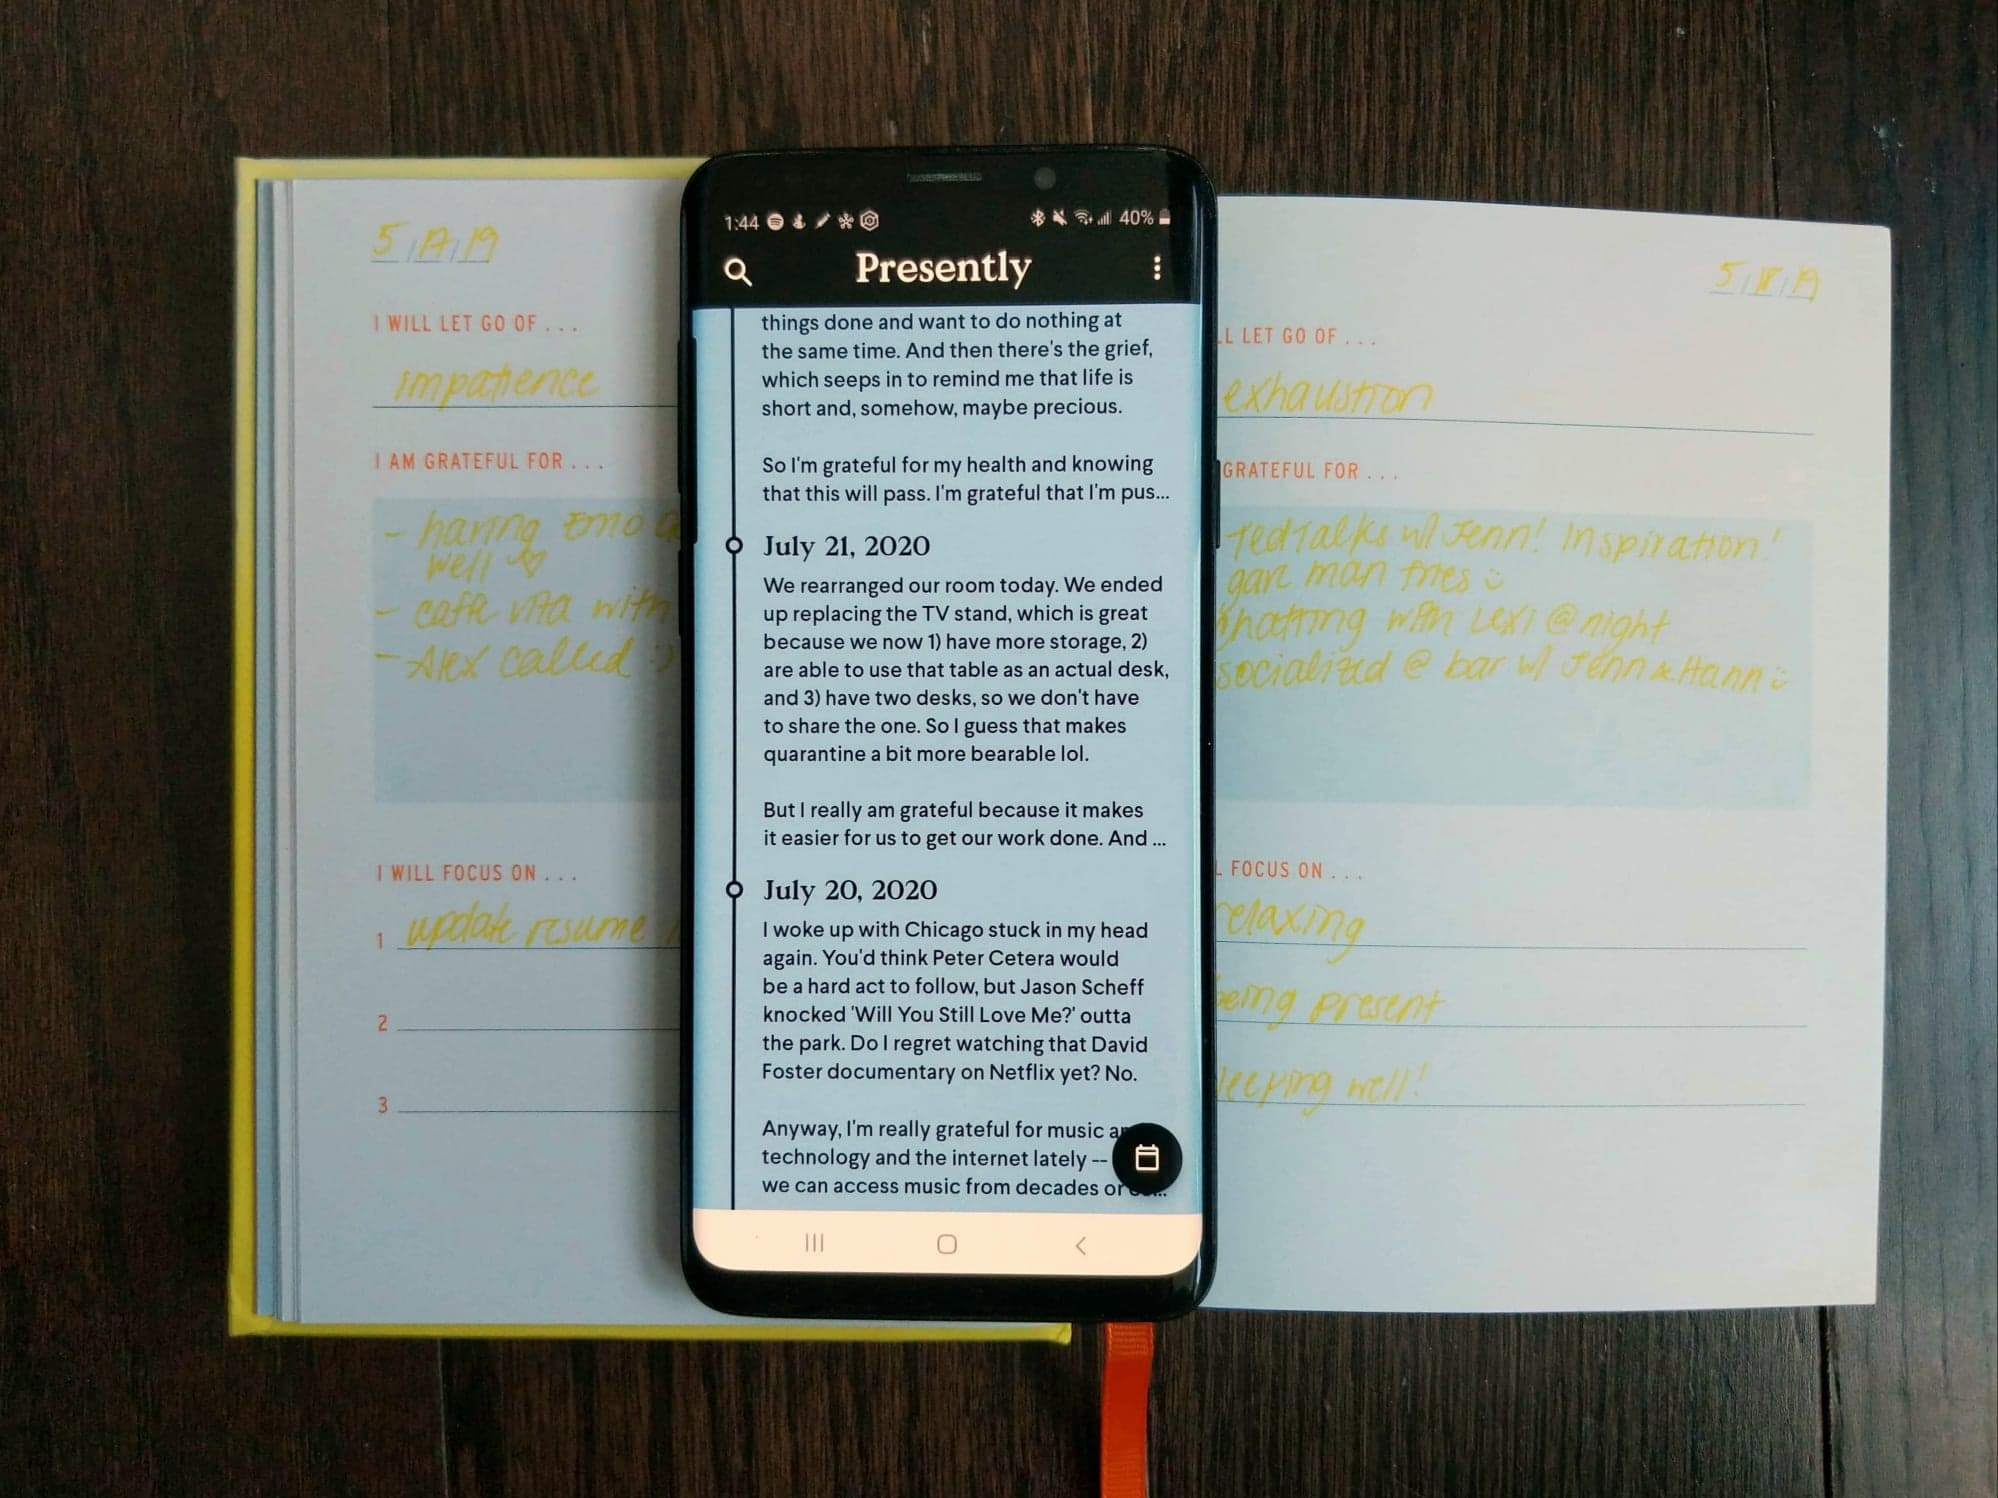 The writer's phone, showing recent entries in the Presently app, sitting on top of the open Two Minute Morning book that shows old entries from May 2019